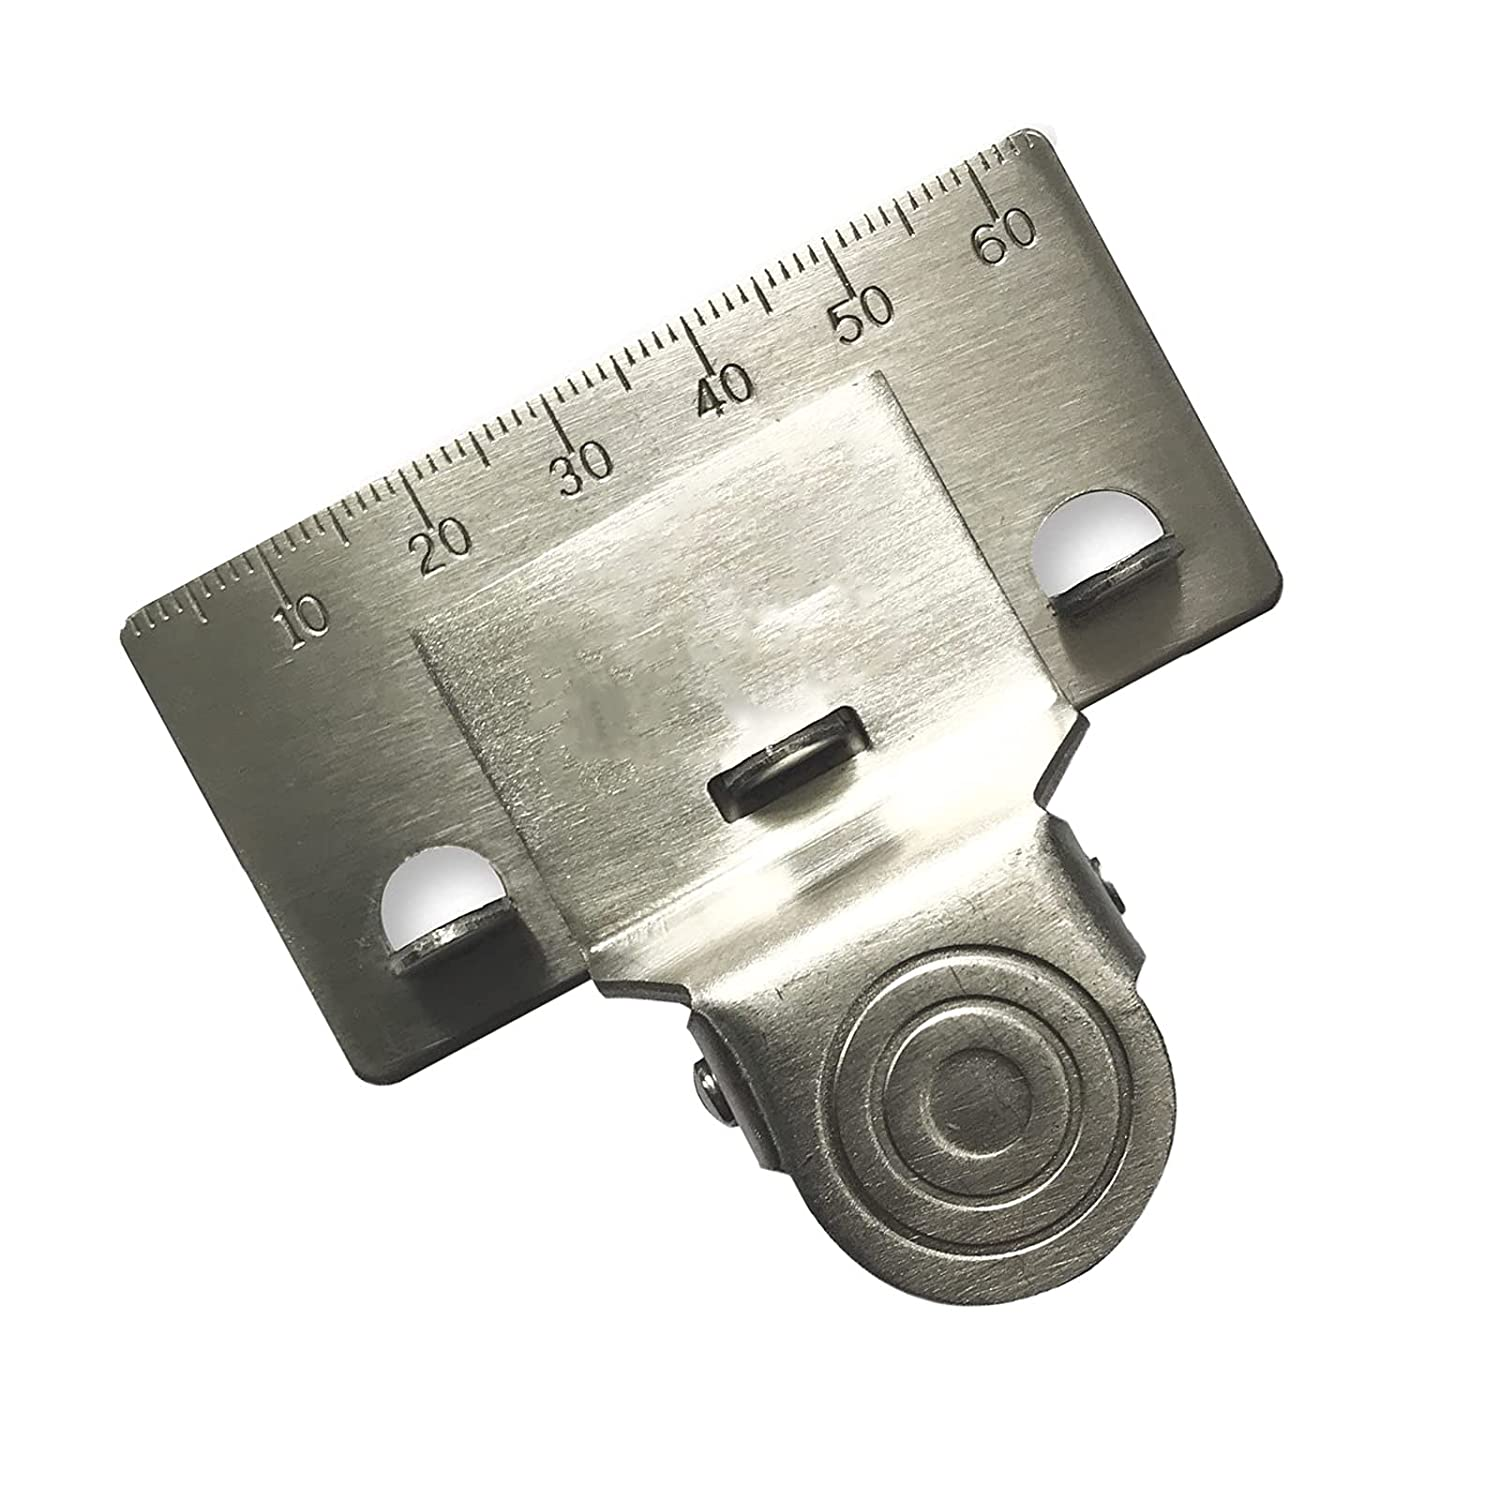 Measuring Translated Tape Clip Over item handling ☆ Tool Precision